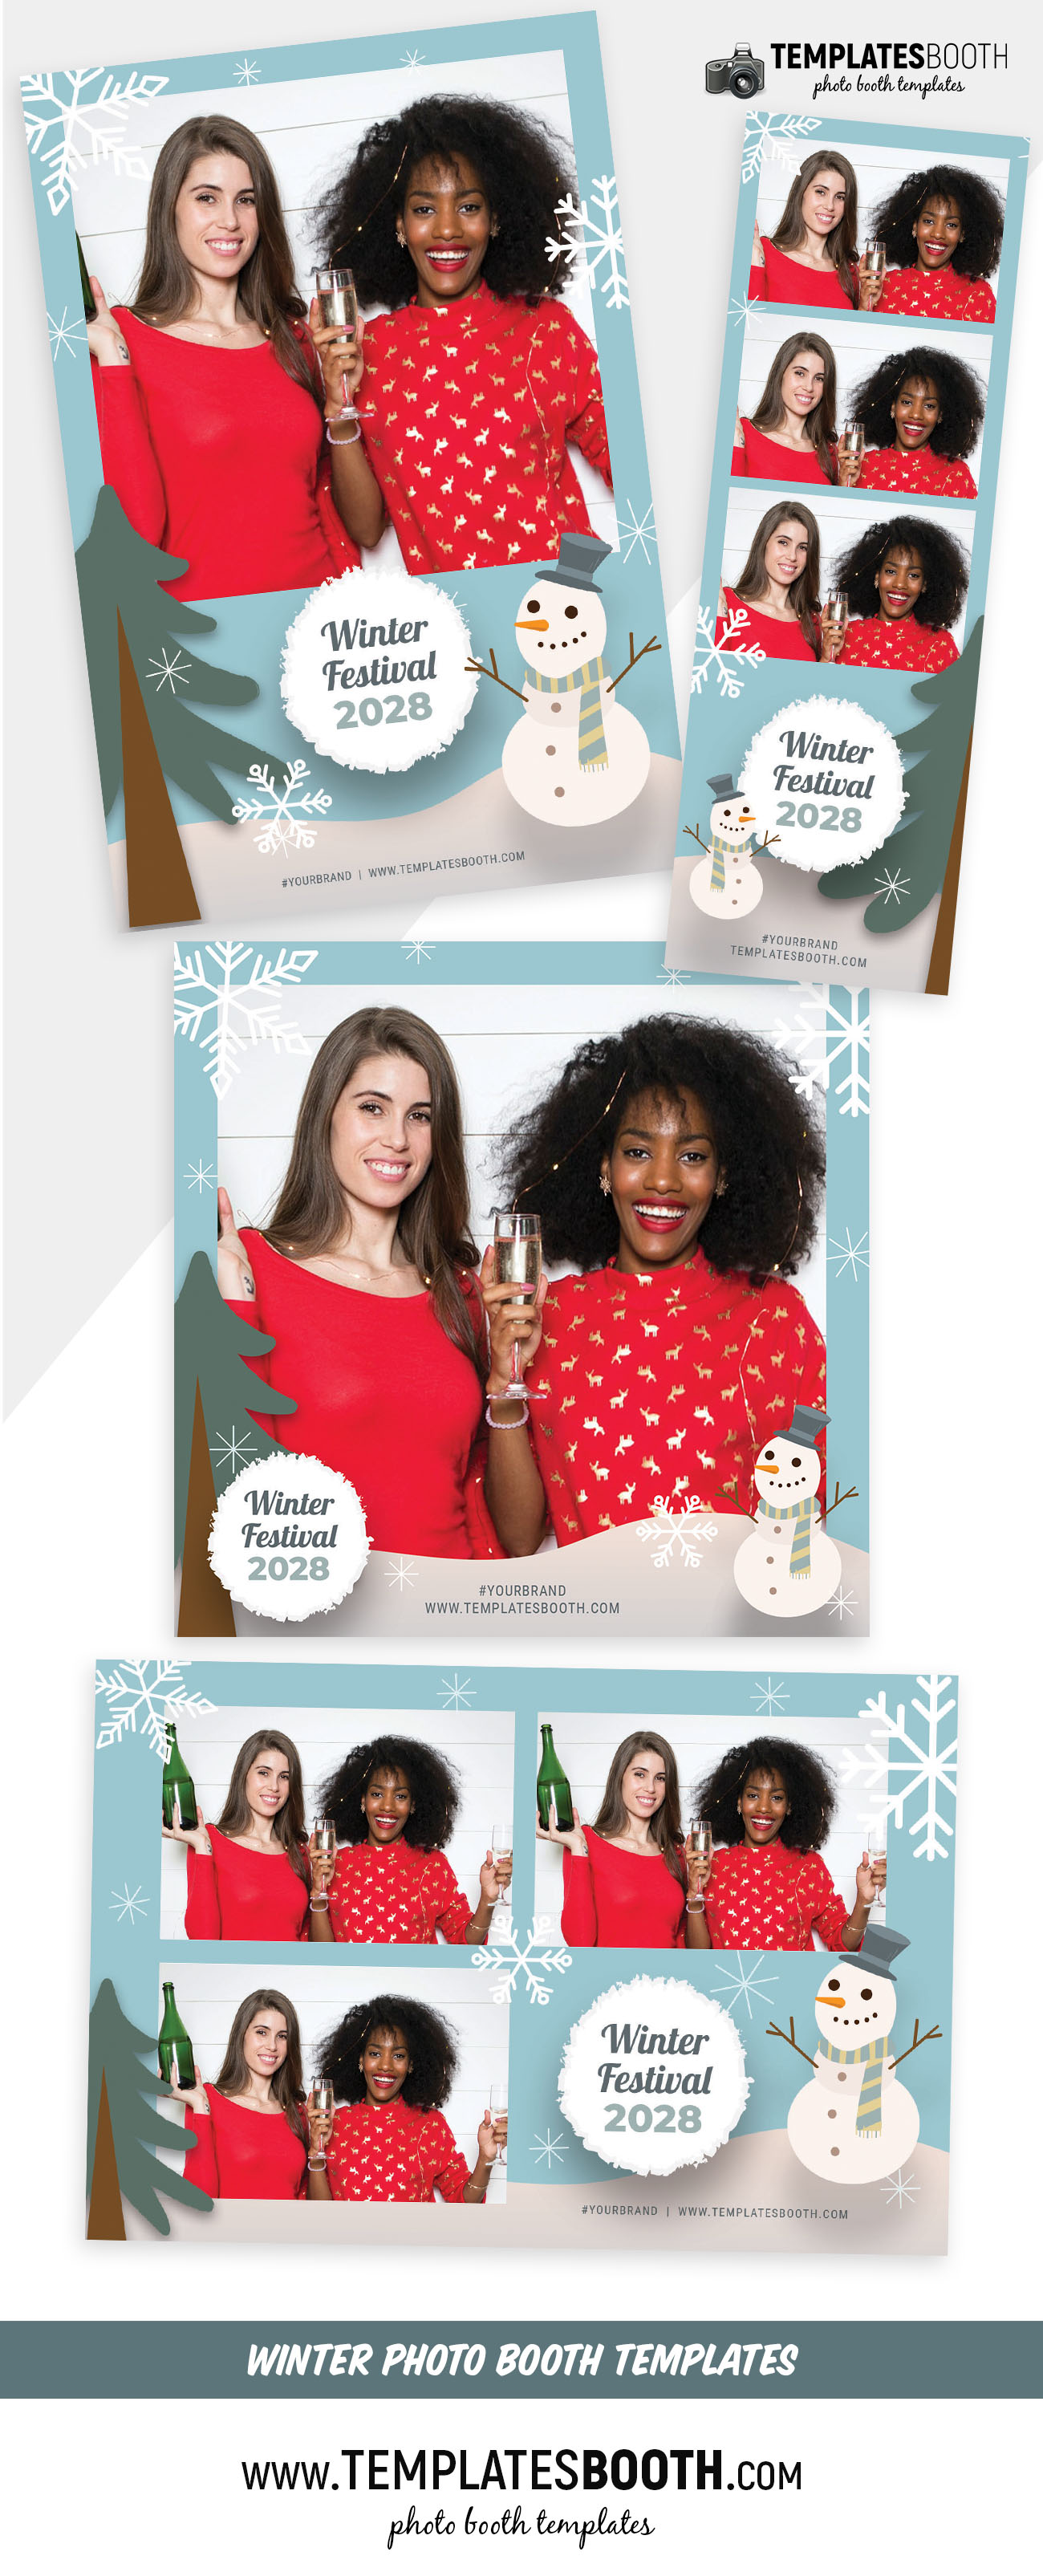 Winter Festival Photo Booth Template (Full Preview